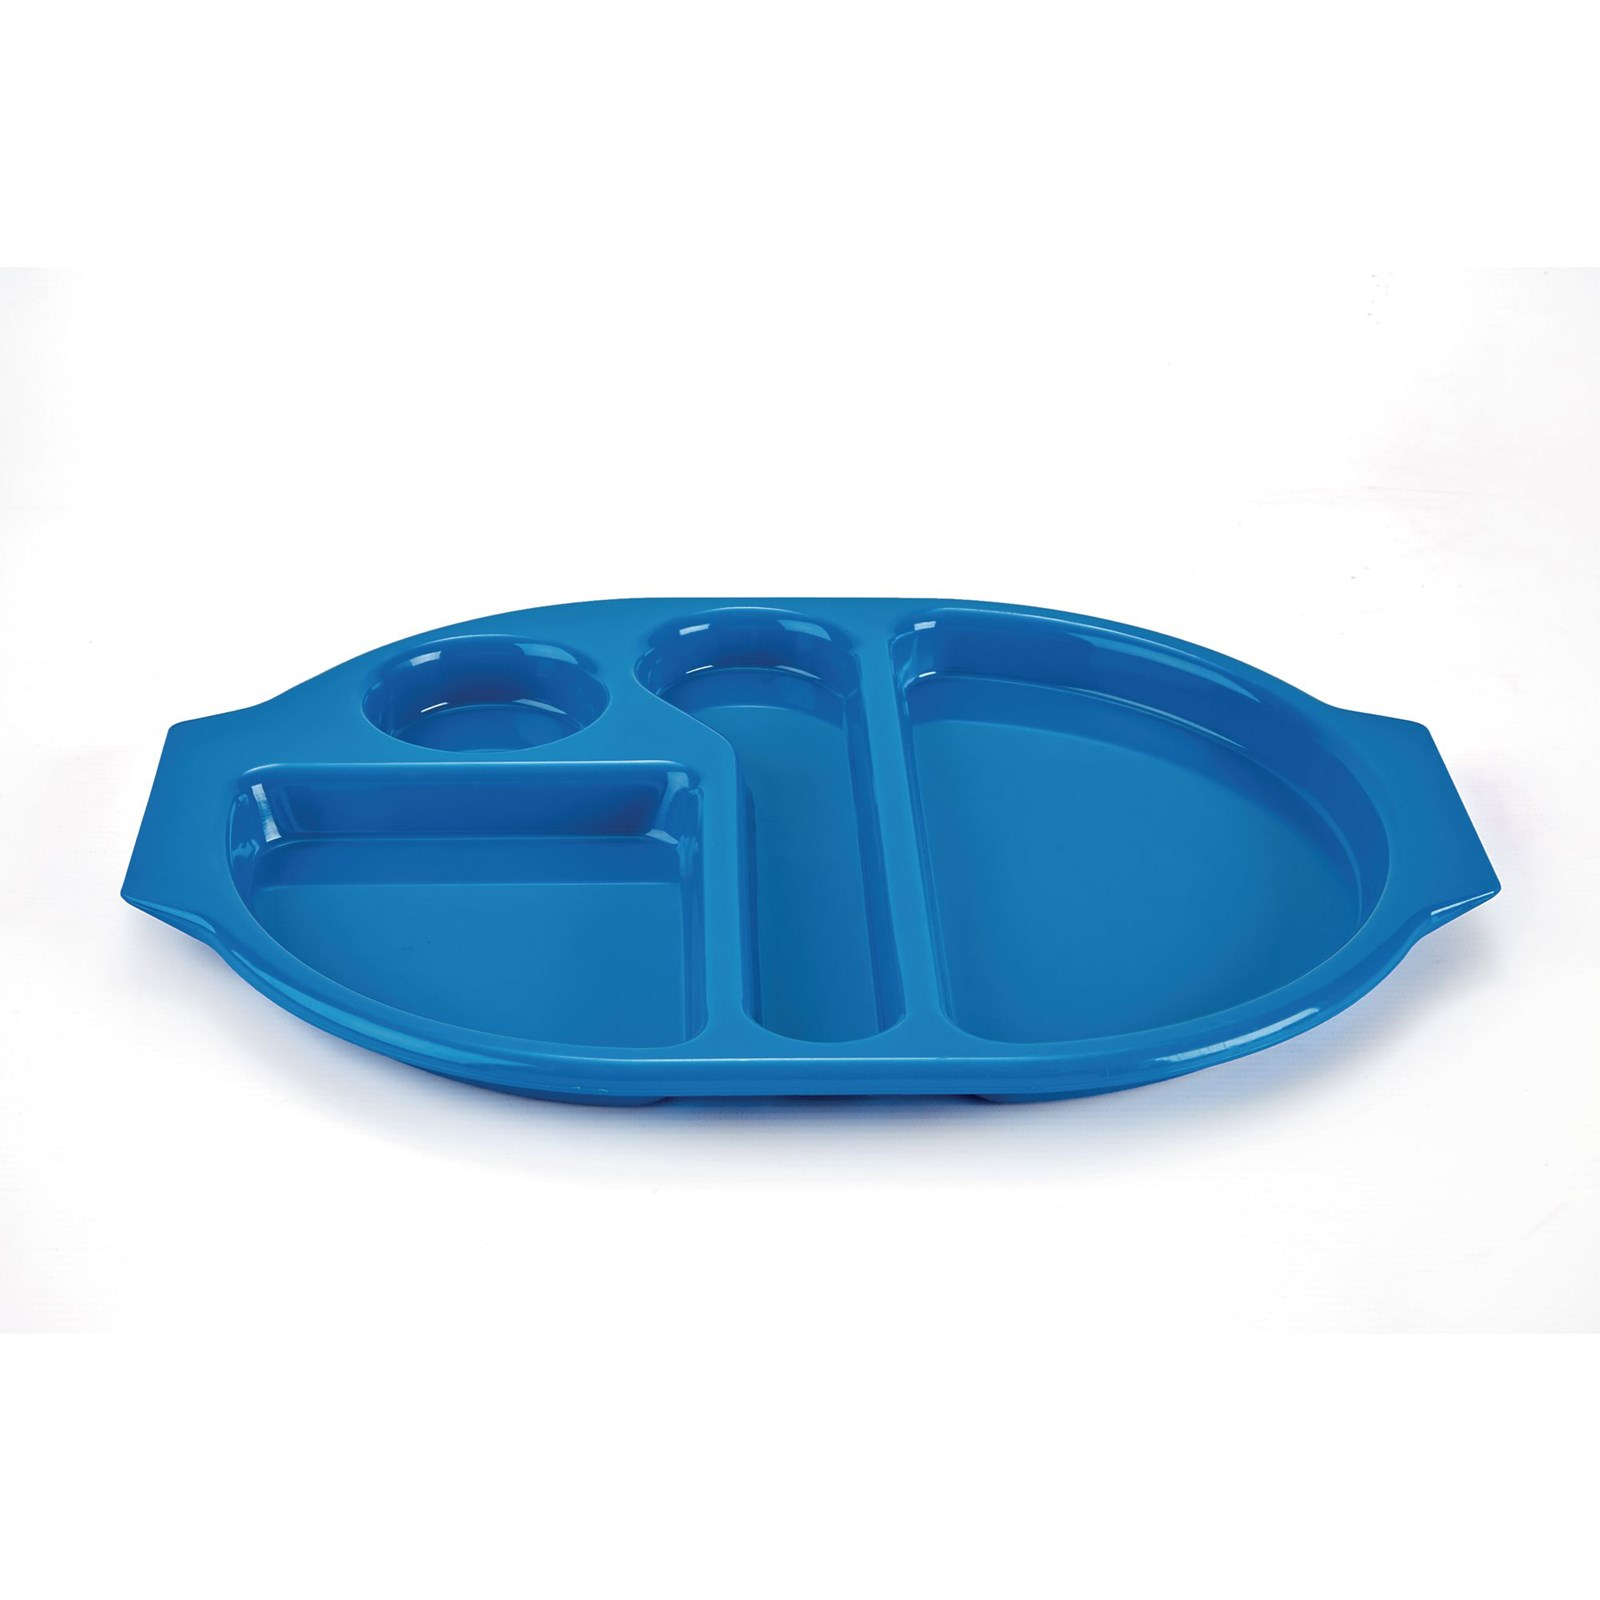 Meal Trays - Large - Blue